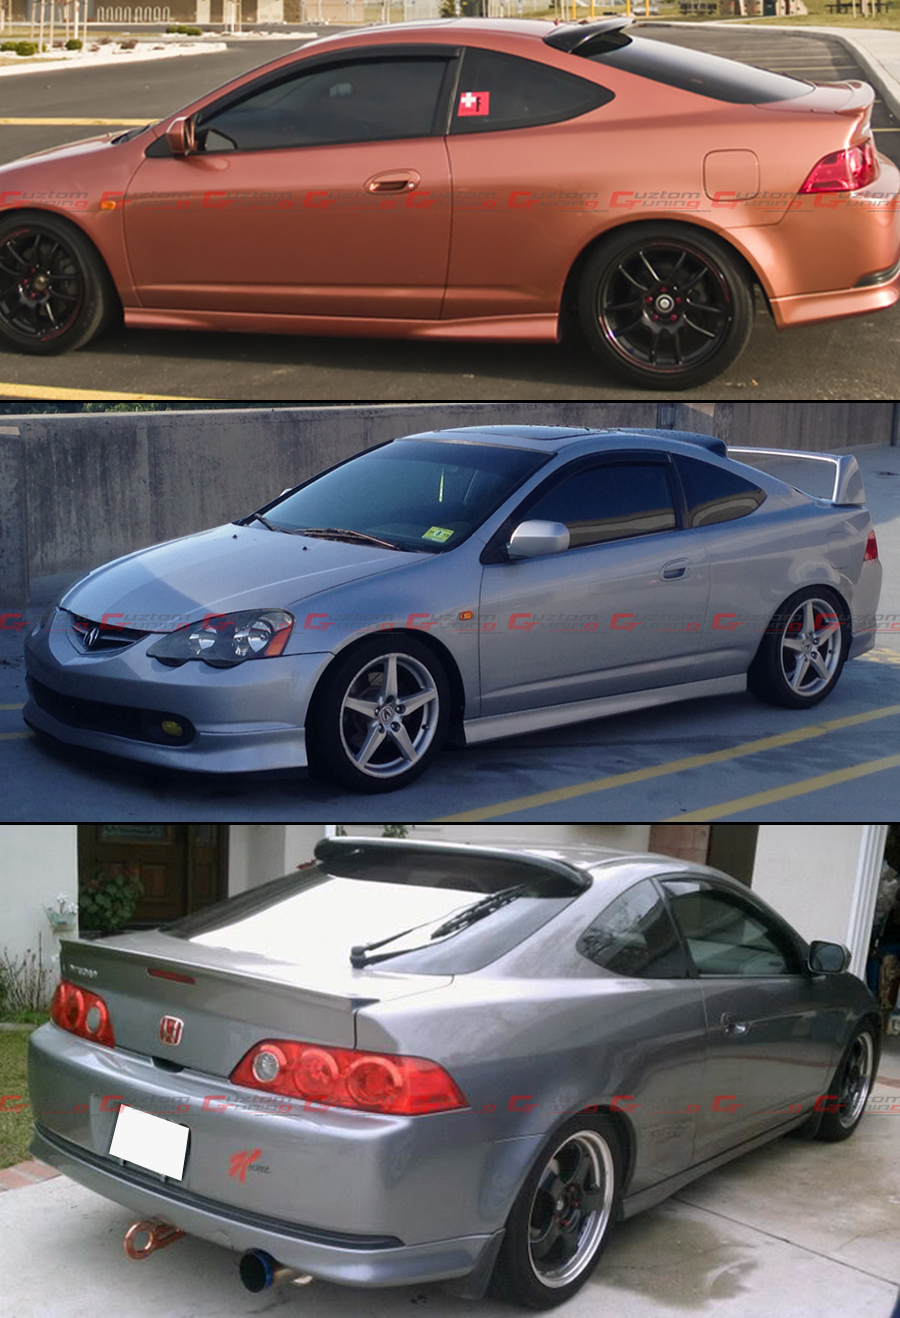 Used Acura For Sale >> For 02-06 Acura RSX DC5 Type-S JDM Style Smoke Tinted Rear ...